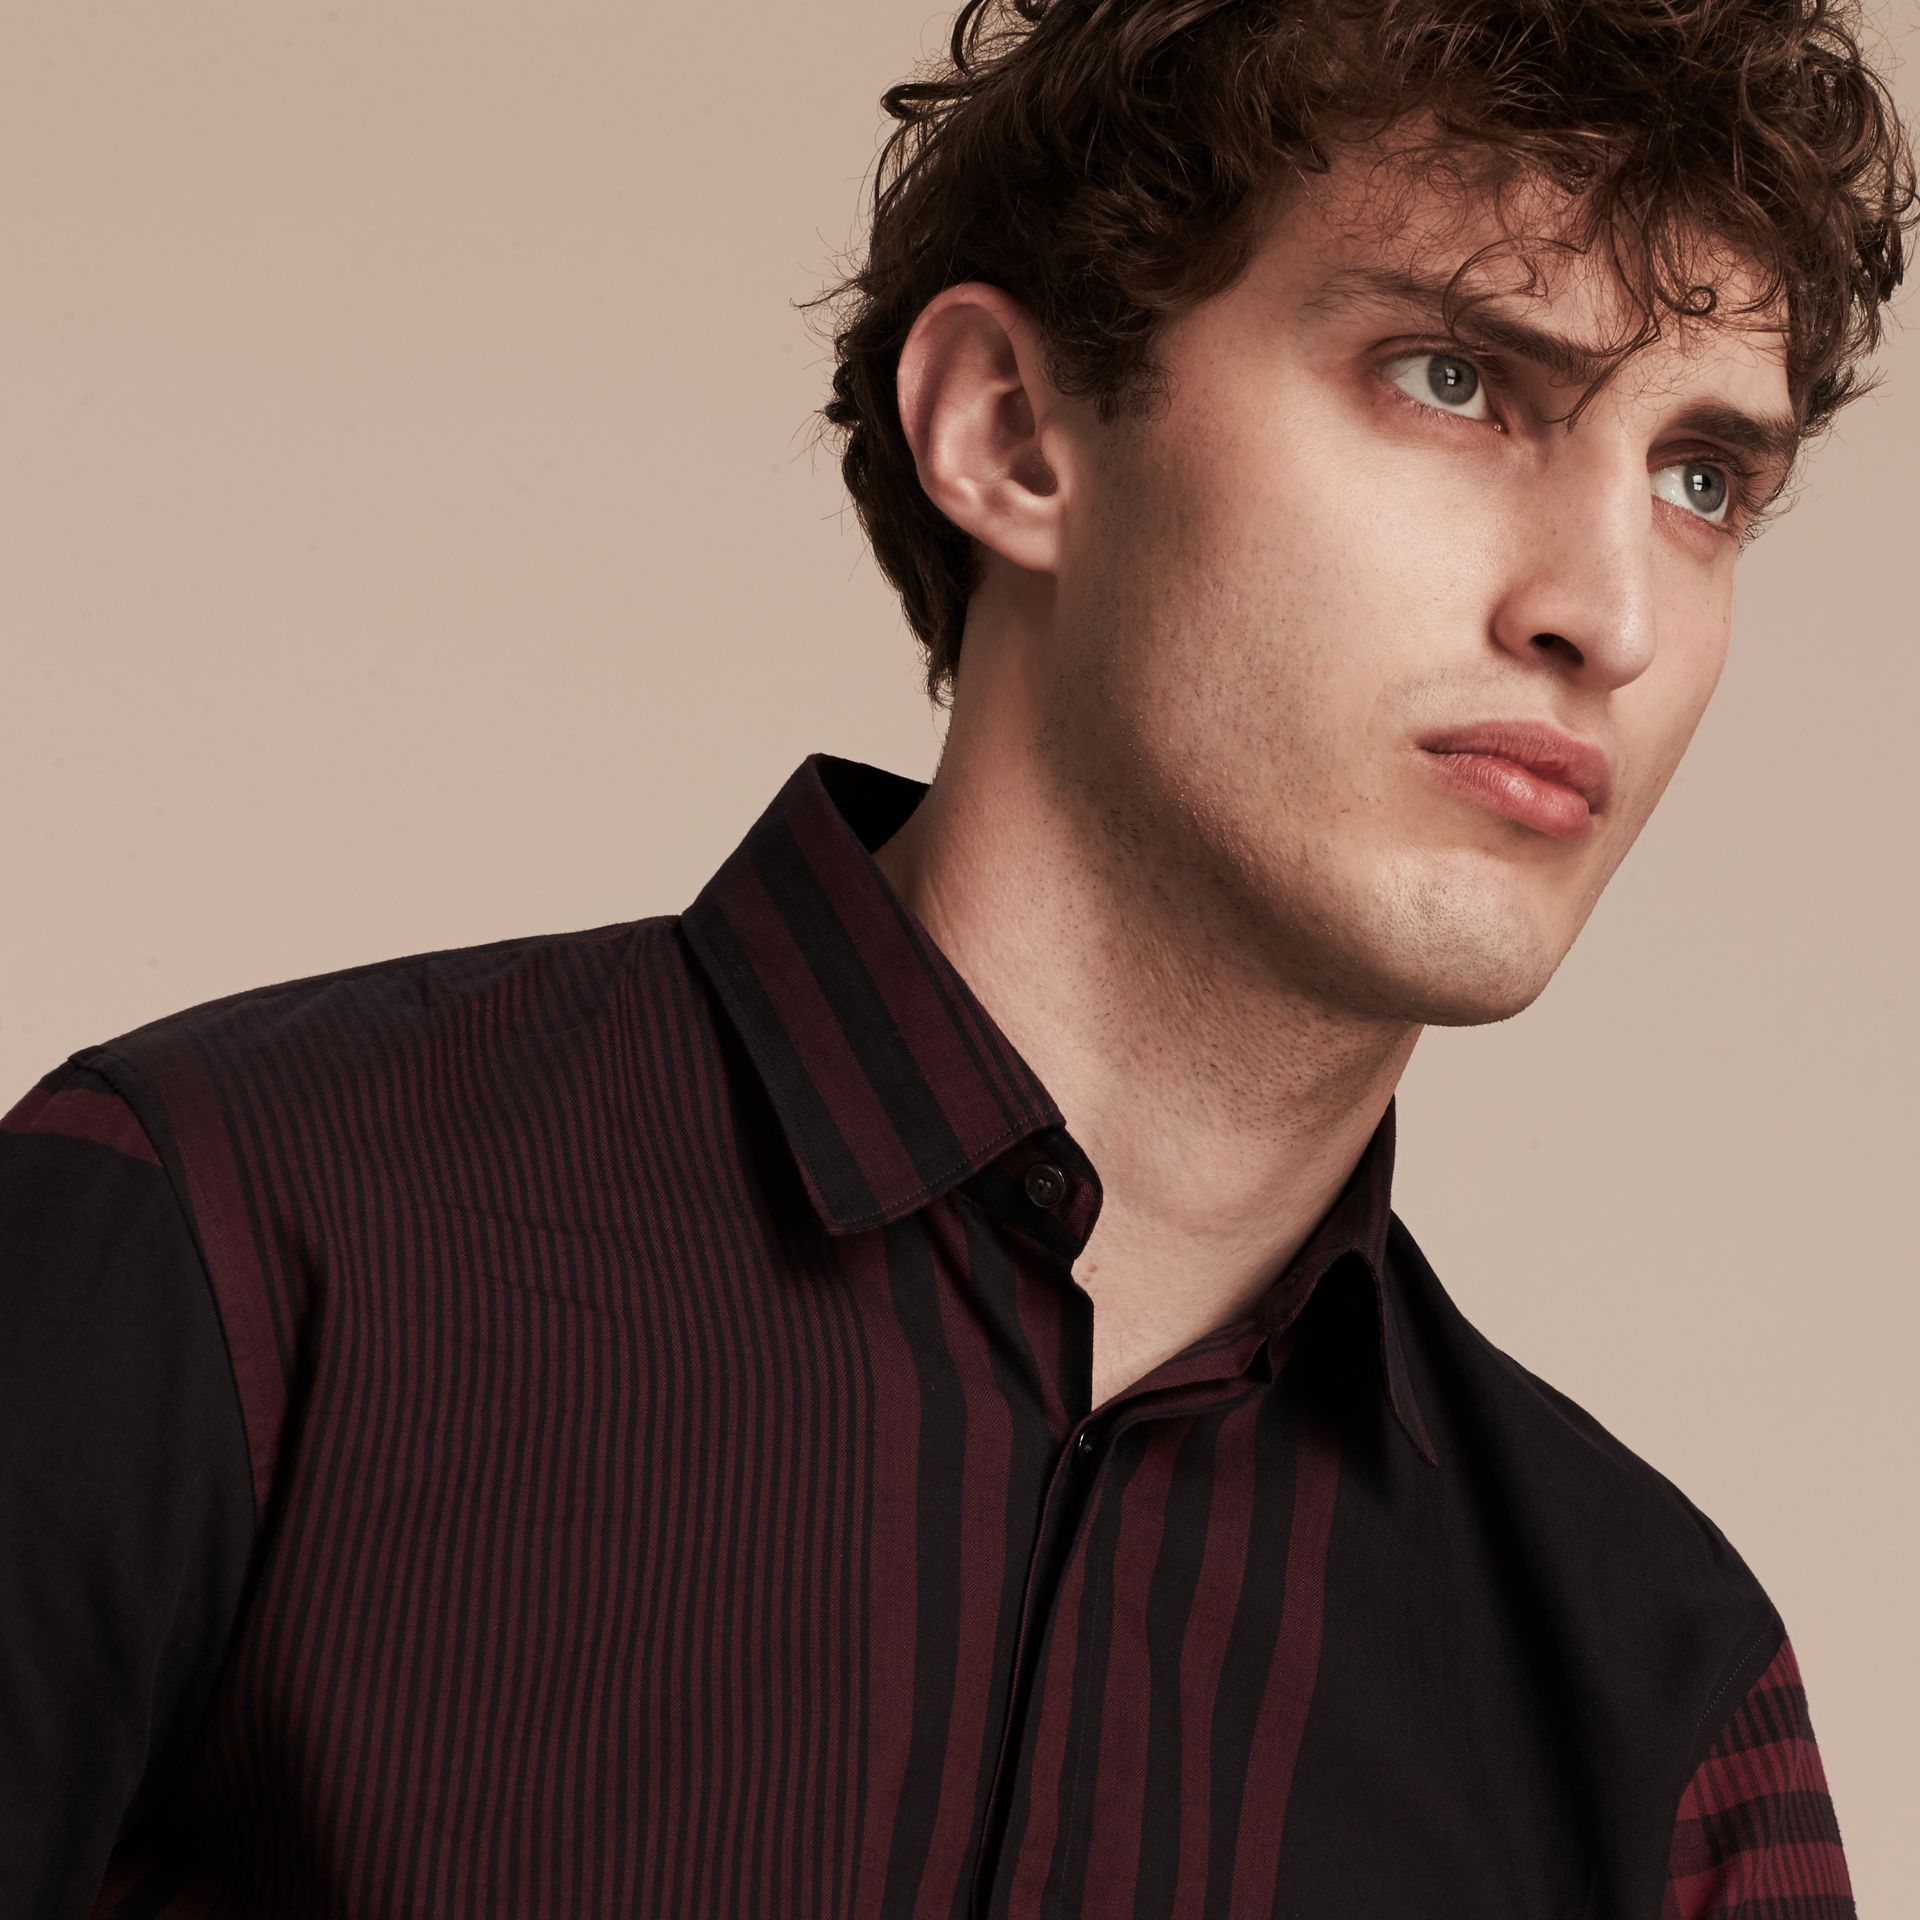 Burgundy red Graphic Check Cotton Shirt Burgundy Red - gallery image 5